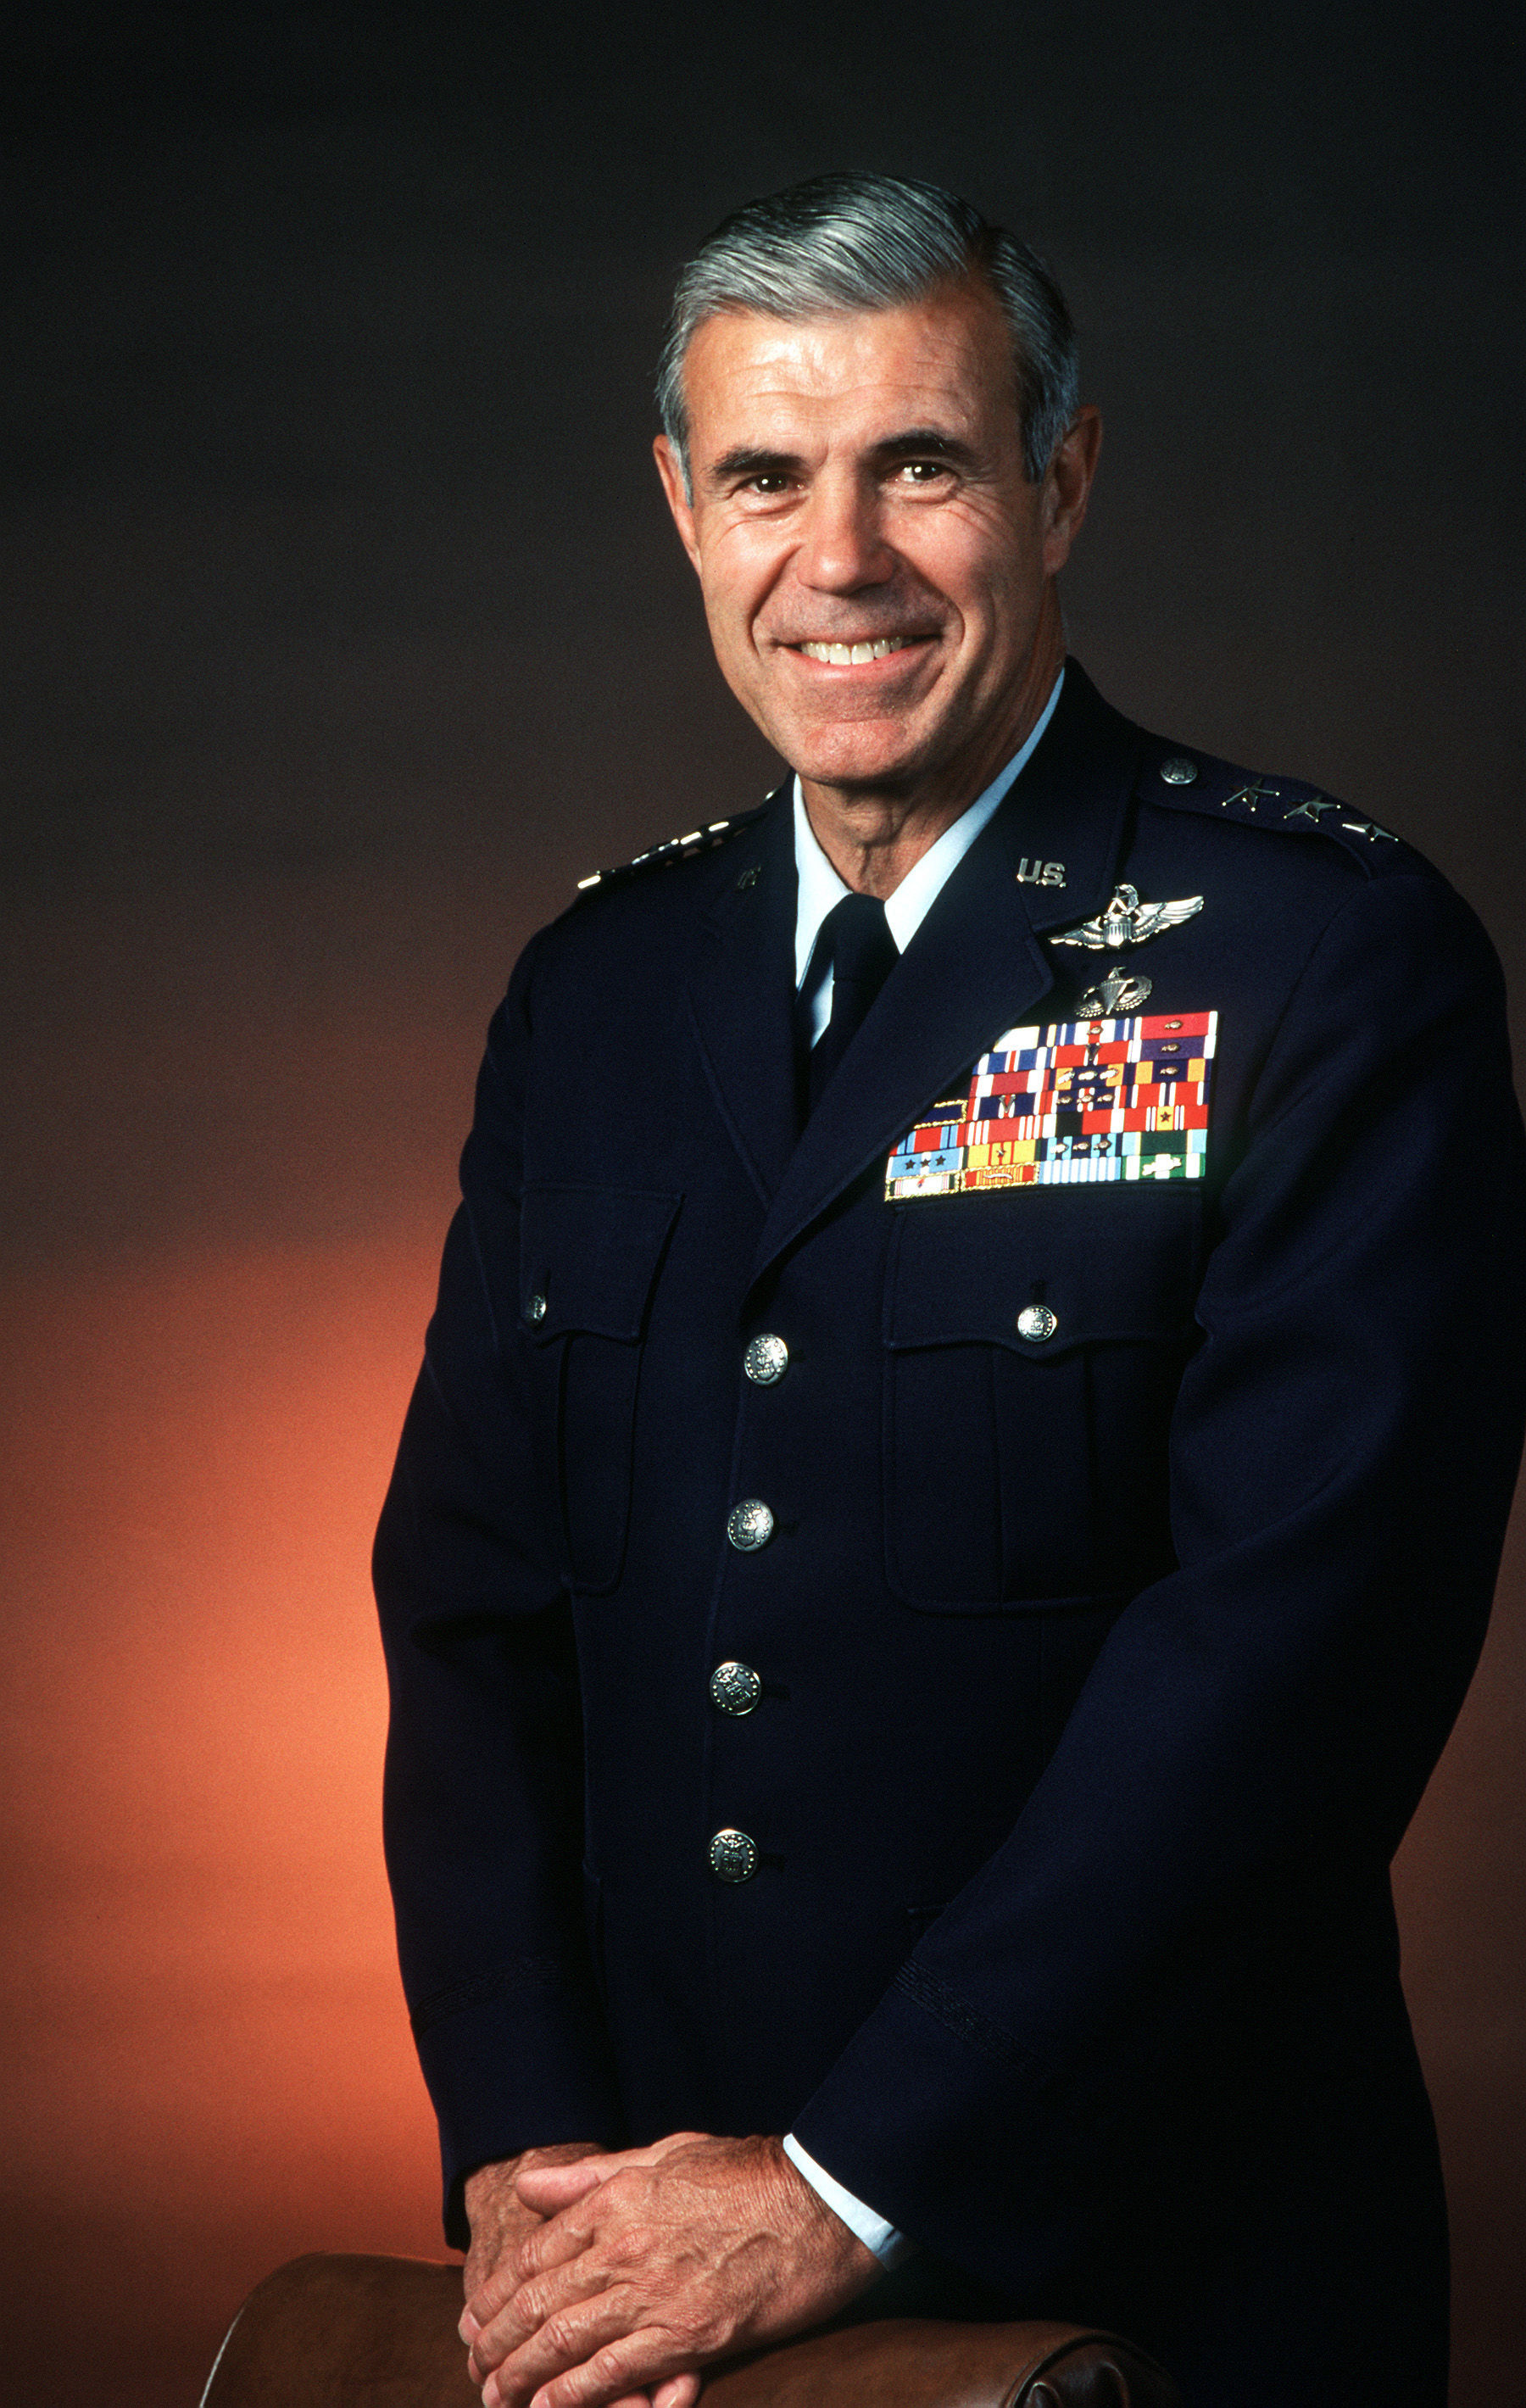 Photo of Thomas C. Richards: General in the United States Air Force and the former chief of staff of the Supreme Headquarters Allied Powers Europe